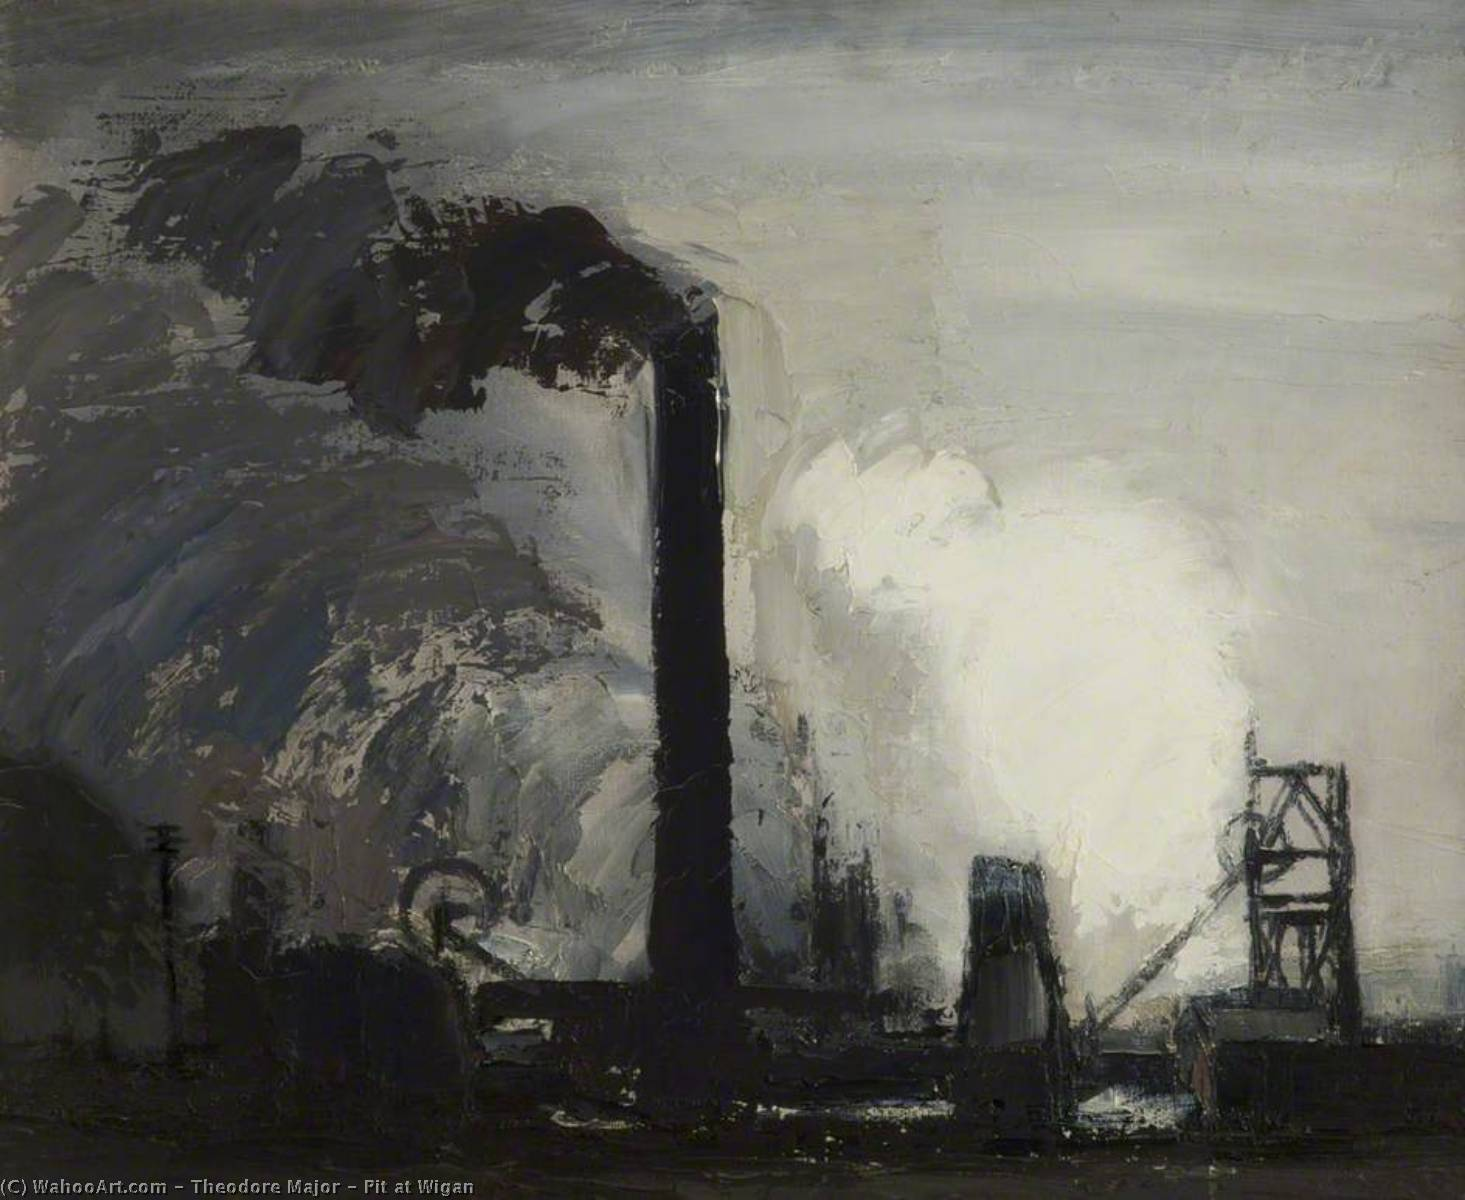 Pit at Wigan, Oil On Canvas by Theodore Major